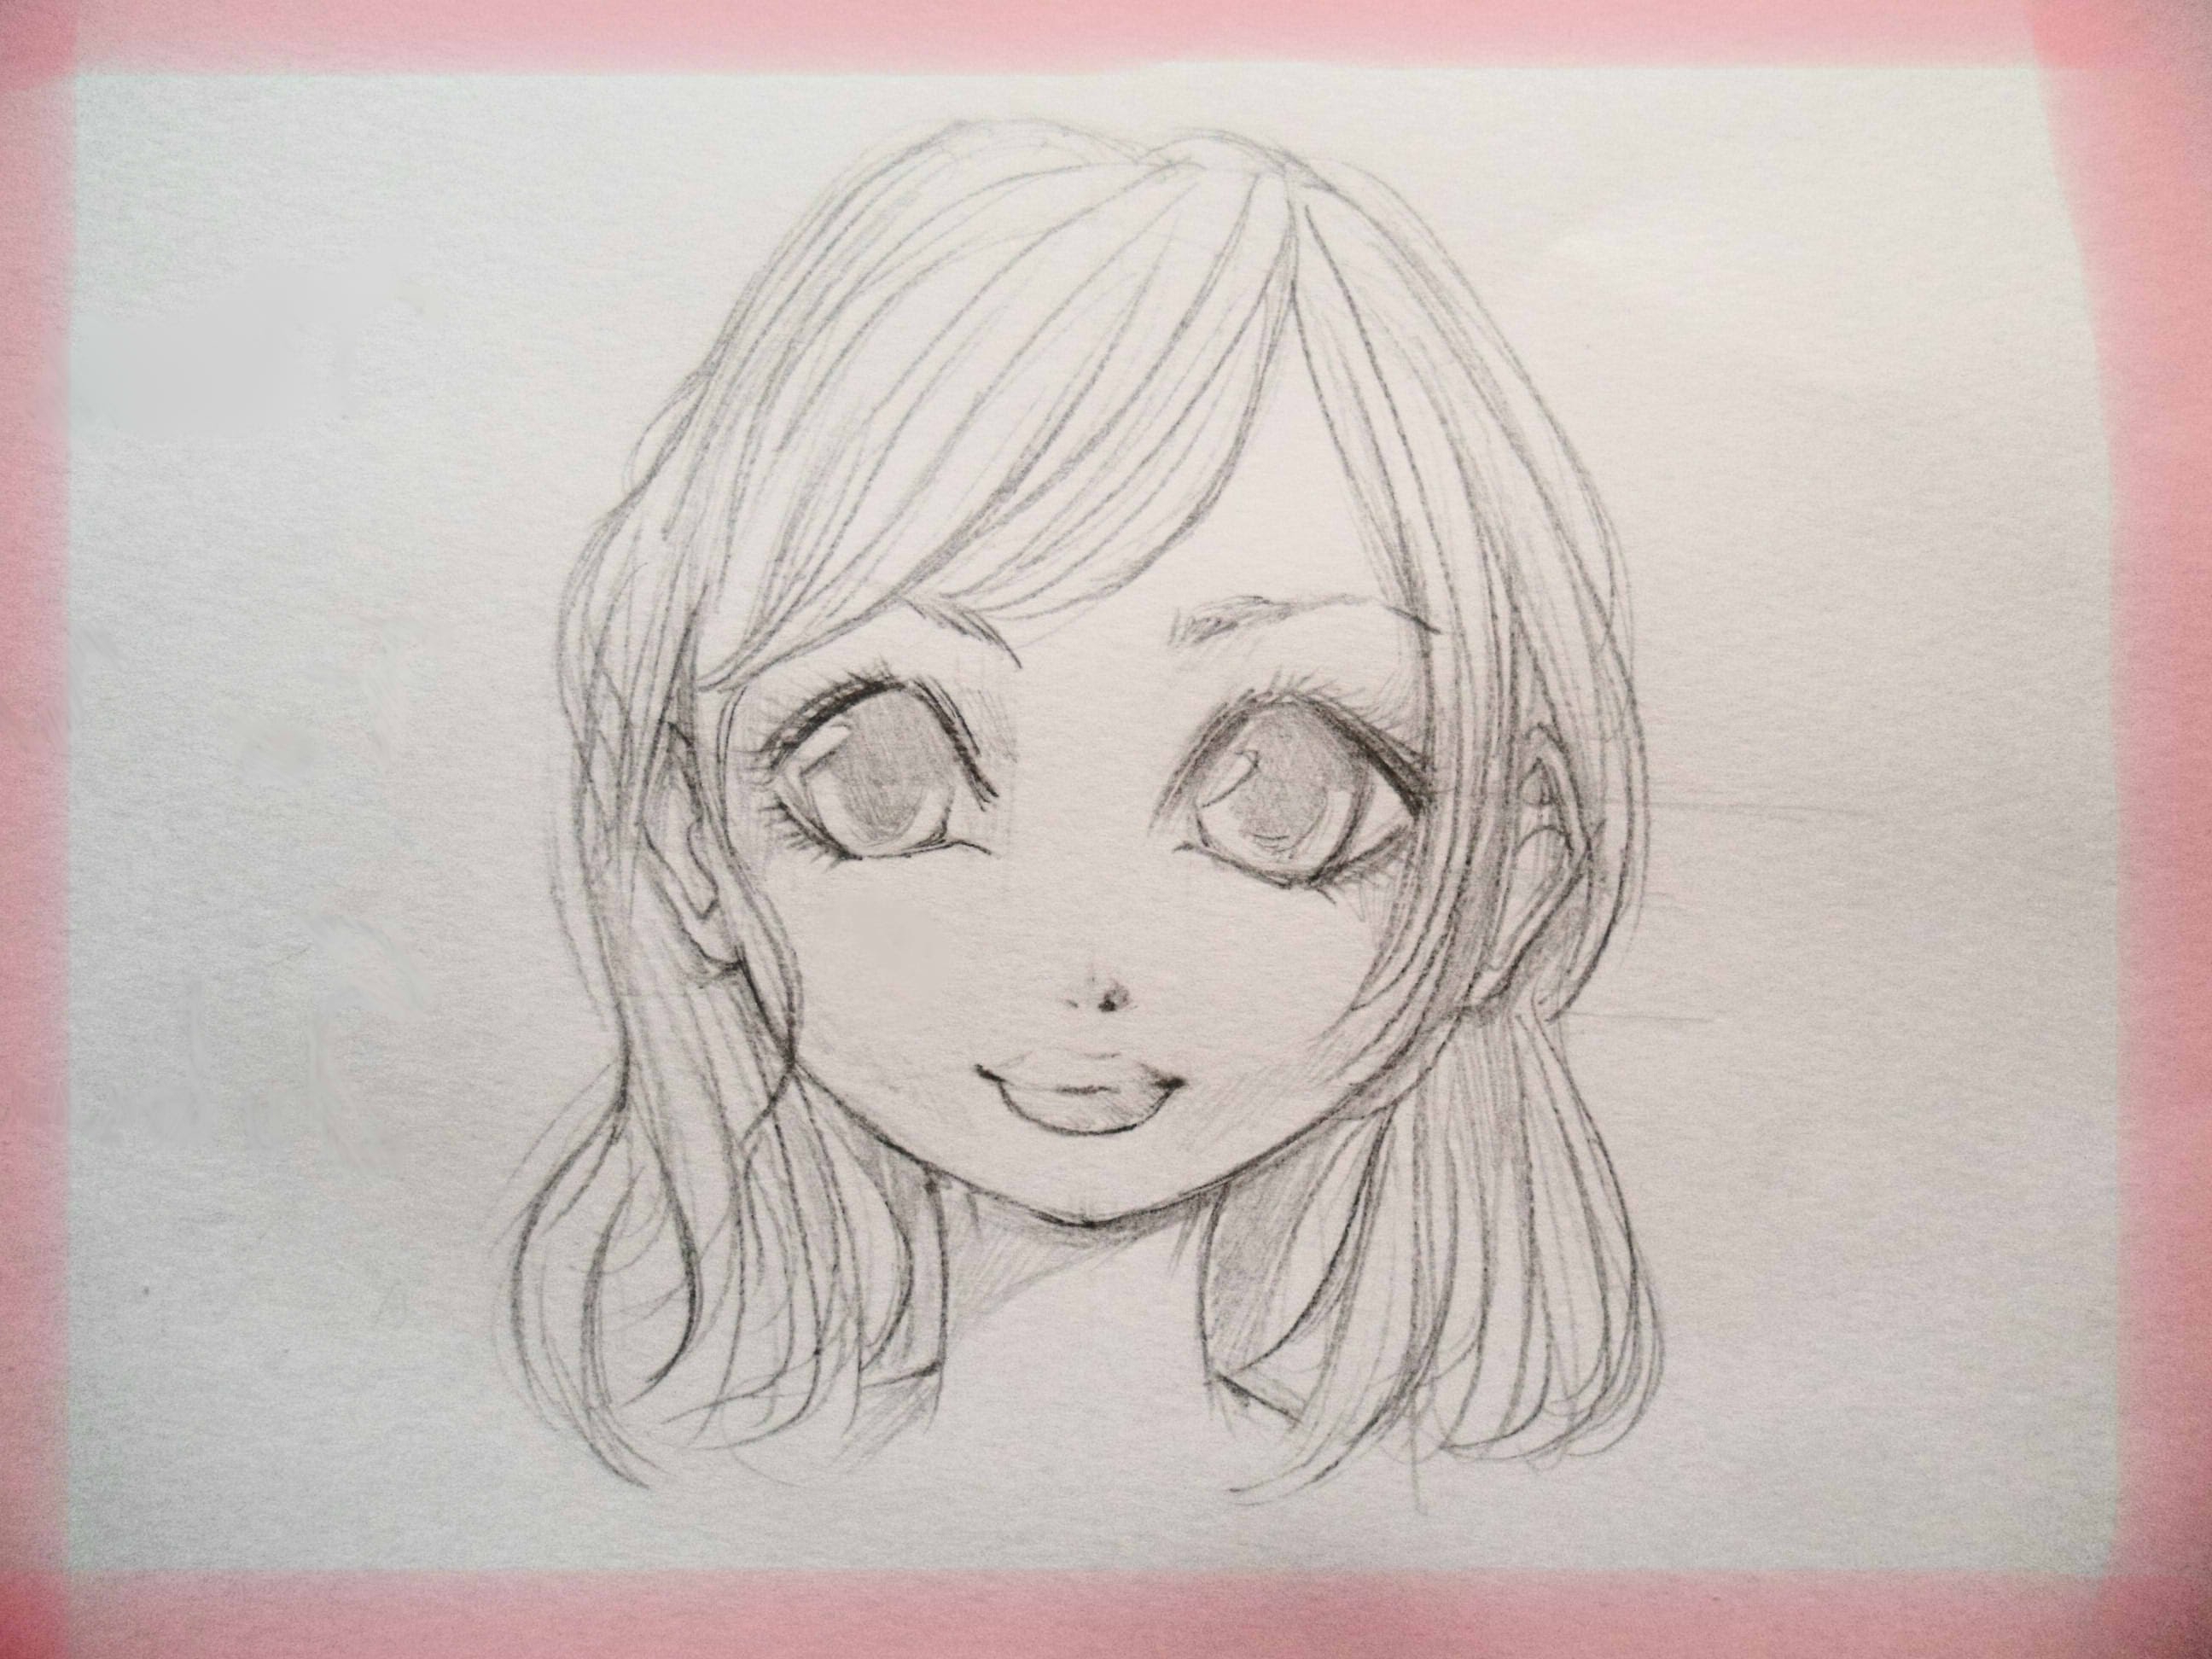 2592x1944 Drawing Images Of Cute Girl Face How To Draw A Cute Manga Girl